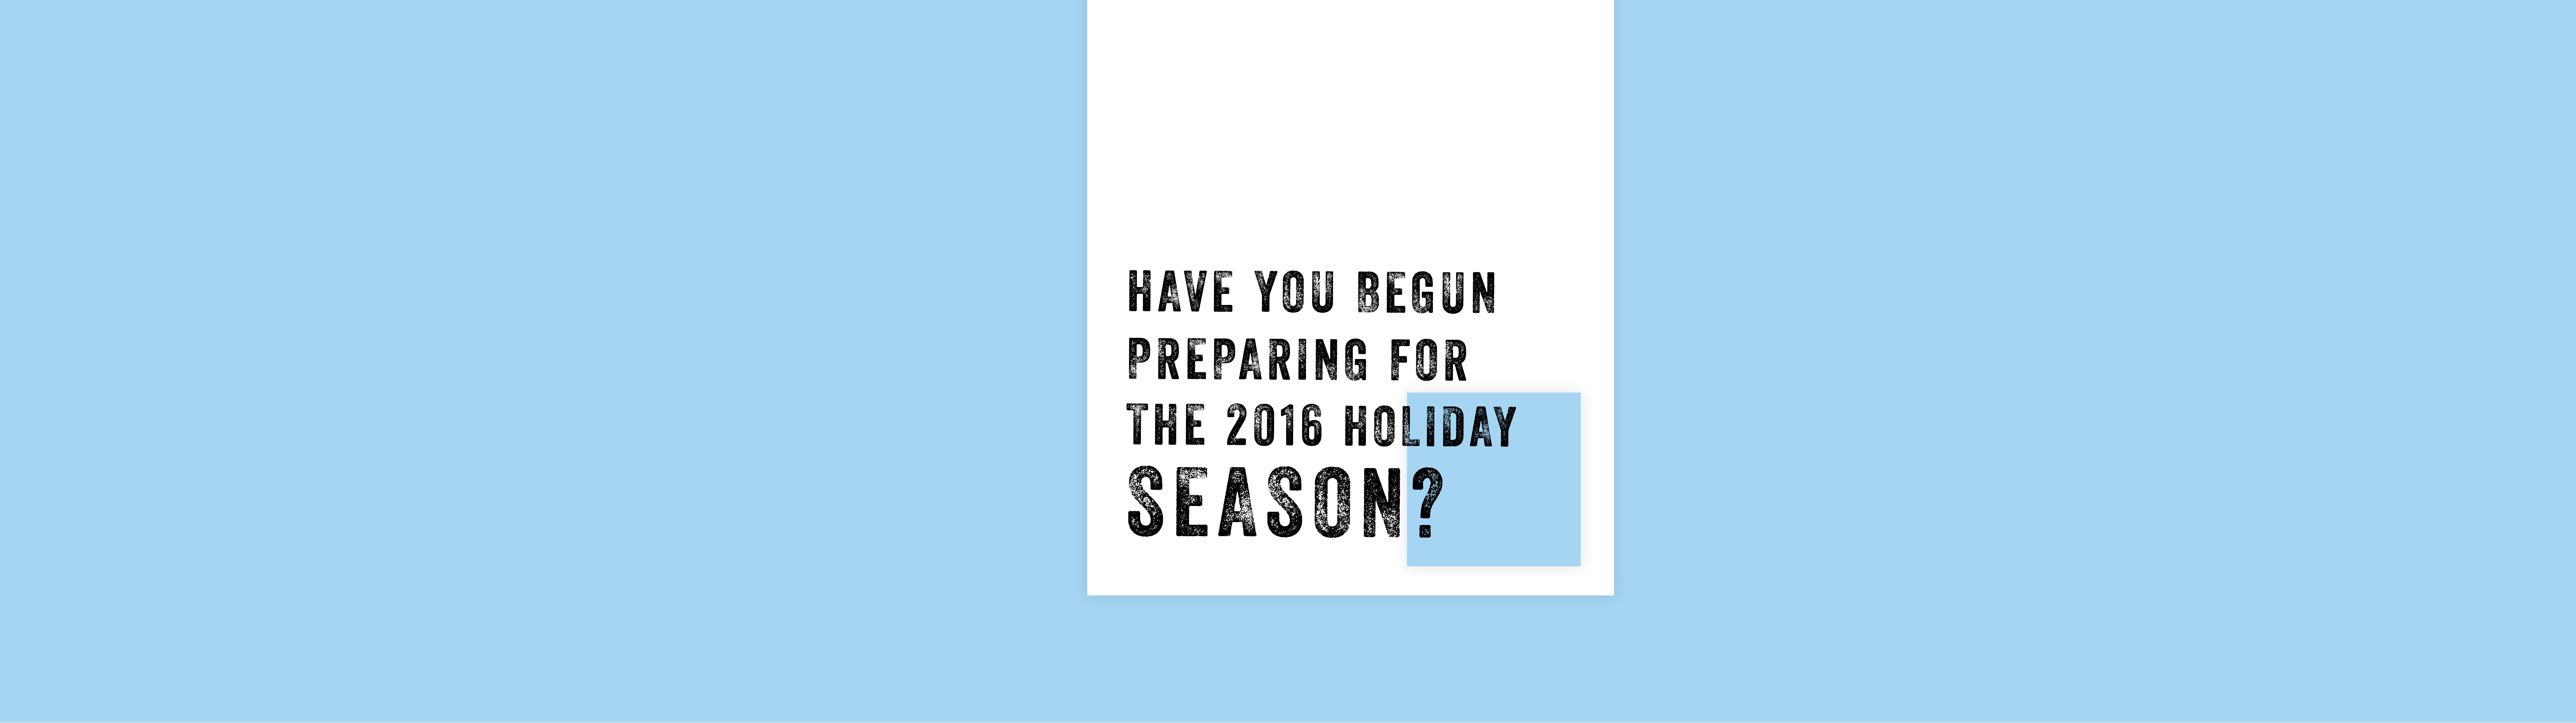 "Blog Header Image ""Have You Begun Preparing For the 2016 Holiday Season?"""